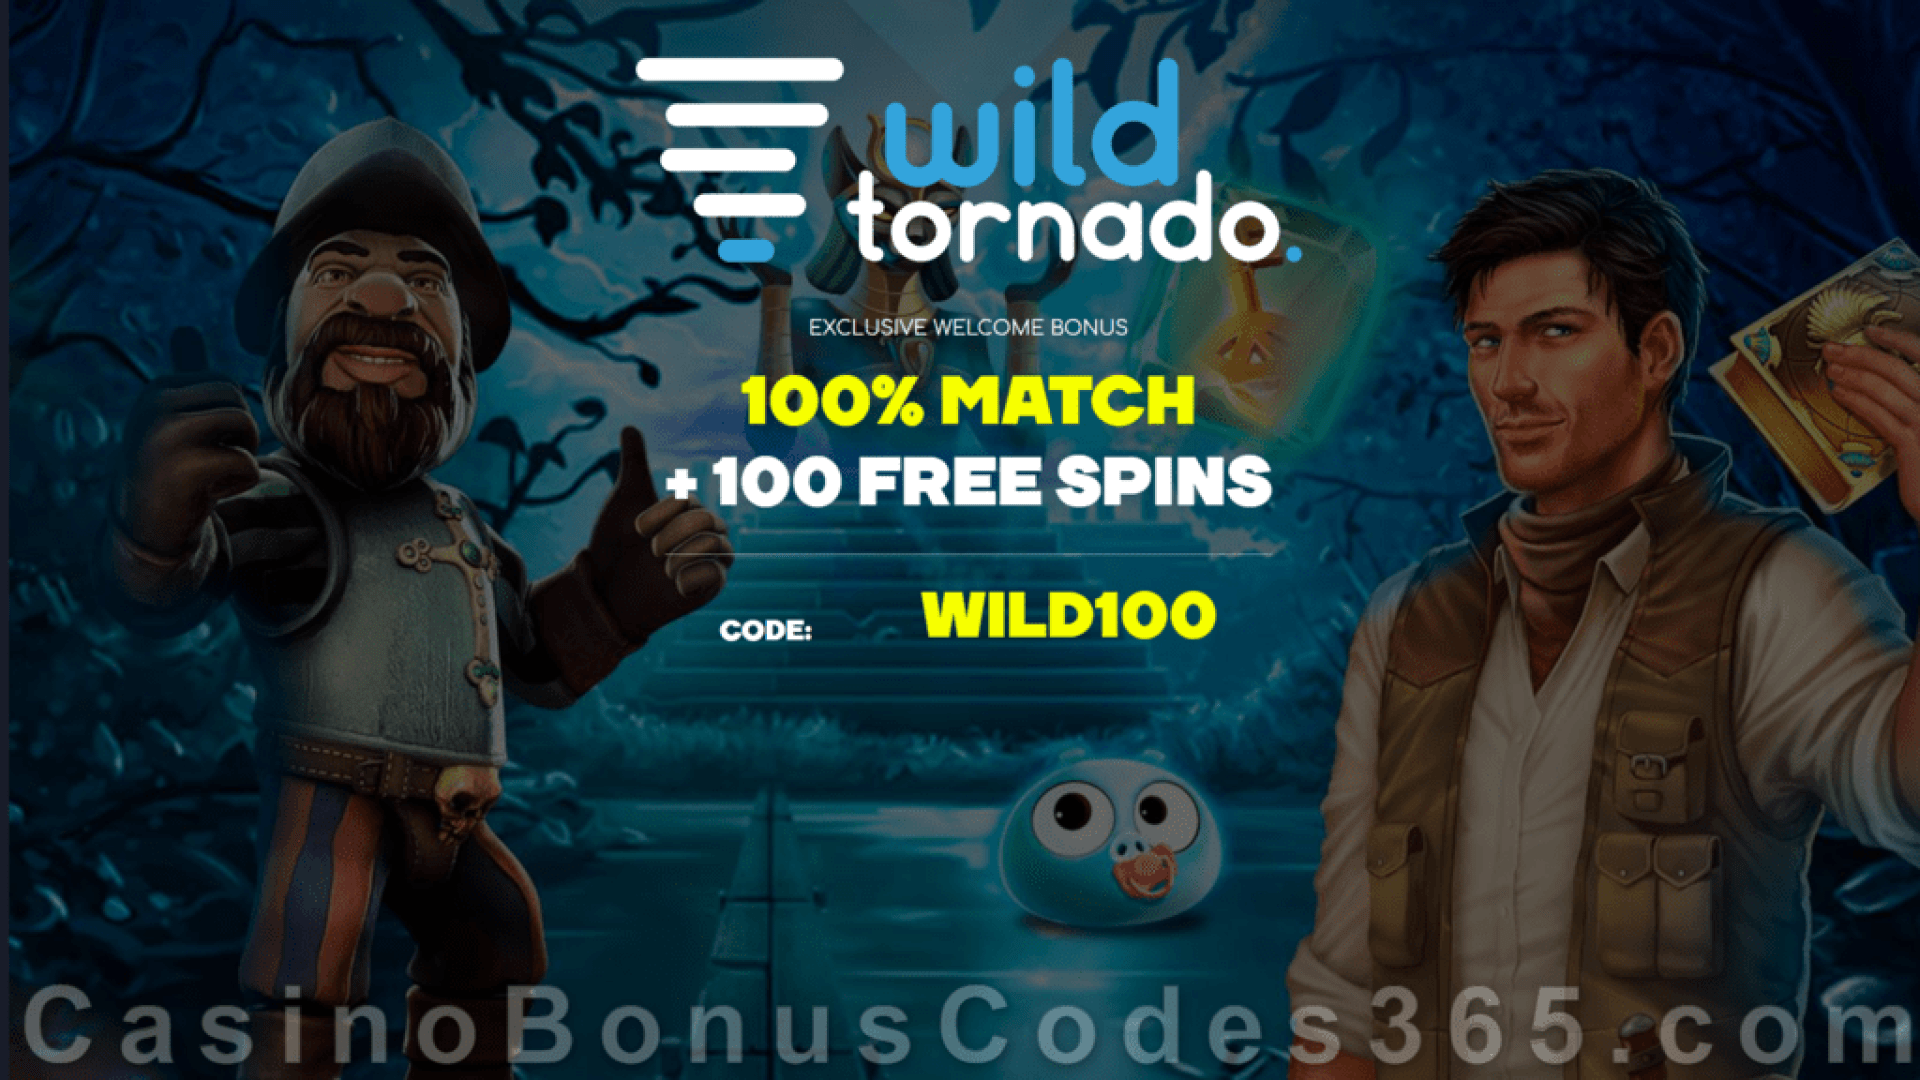 WildTornado Casino 100% Match up to $1000 Bonus plus 100 FREE Spins Welcome Package IGTech Wolf Treasure